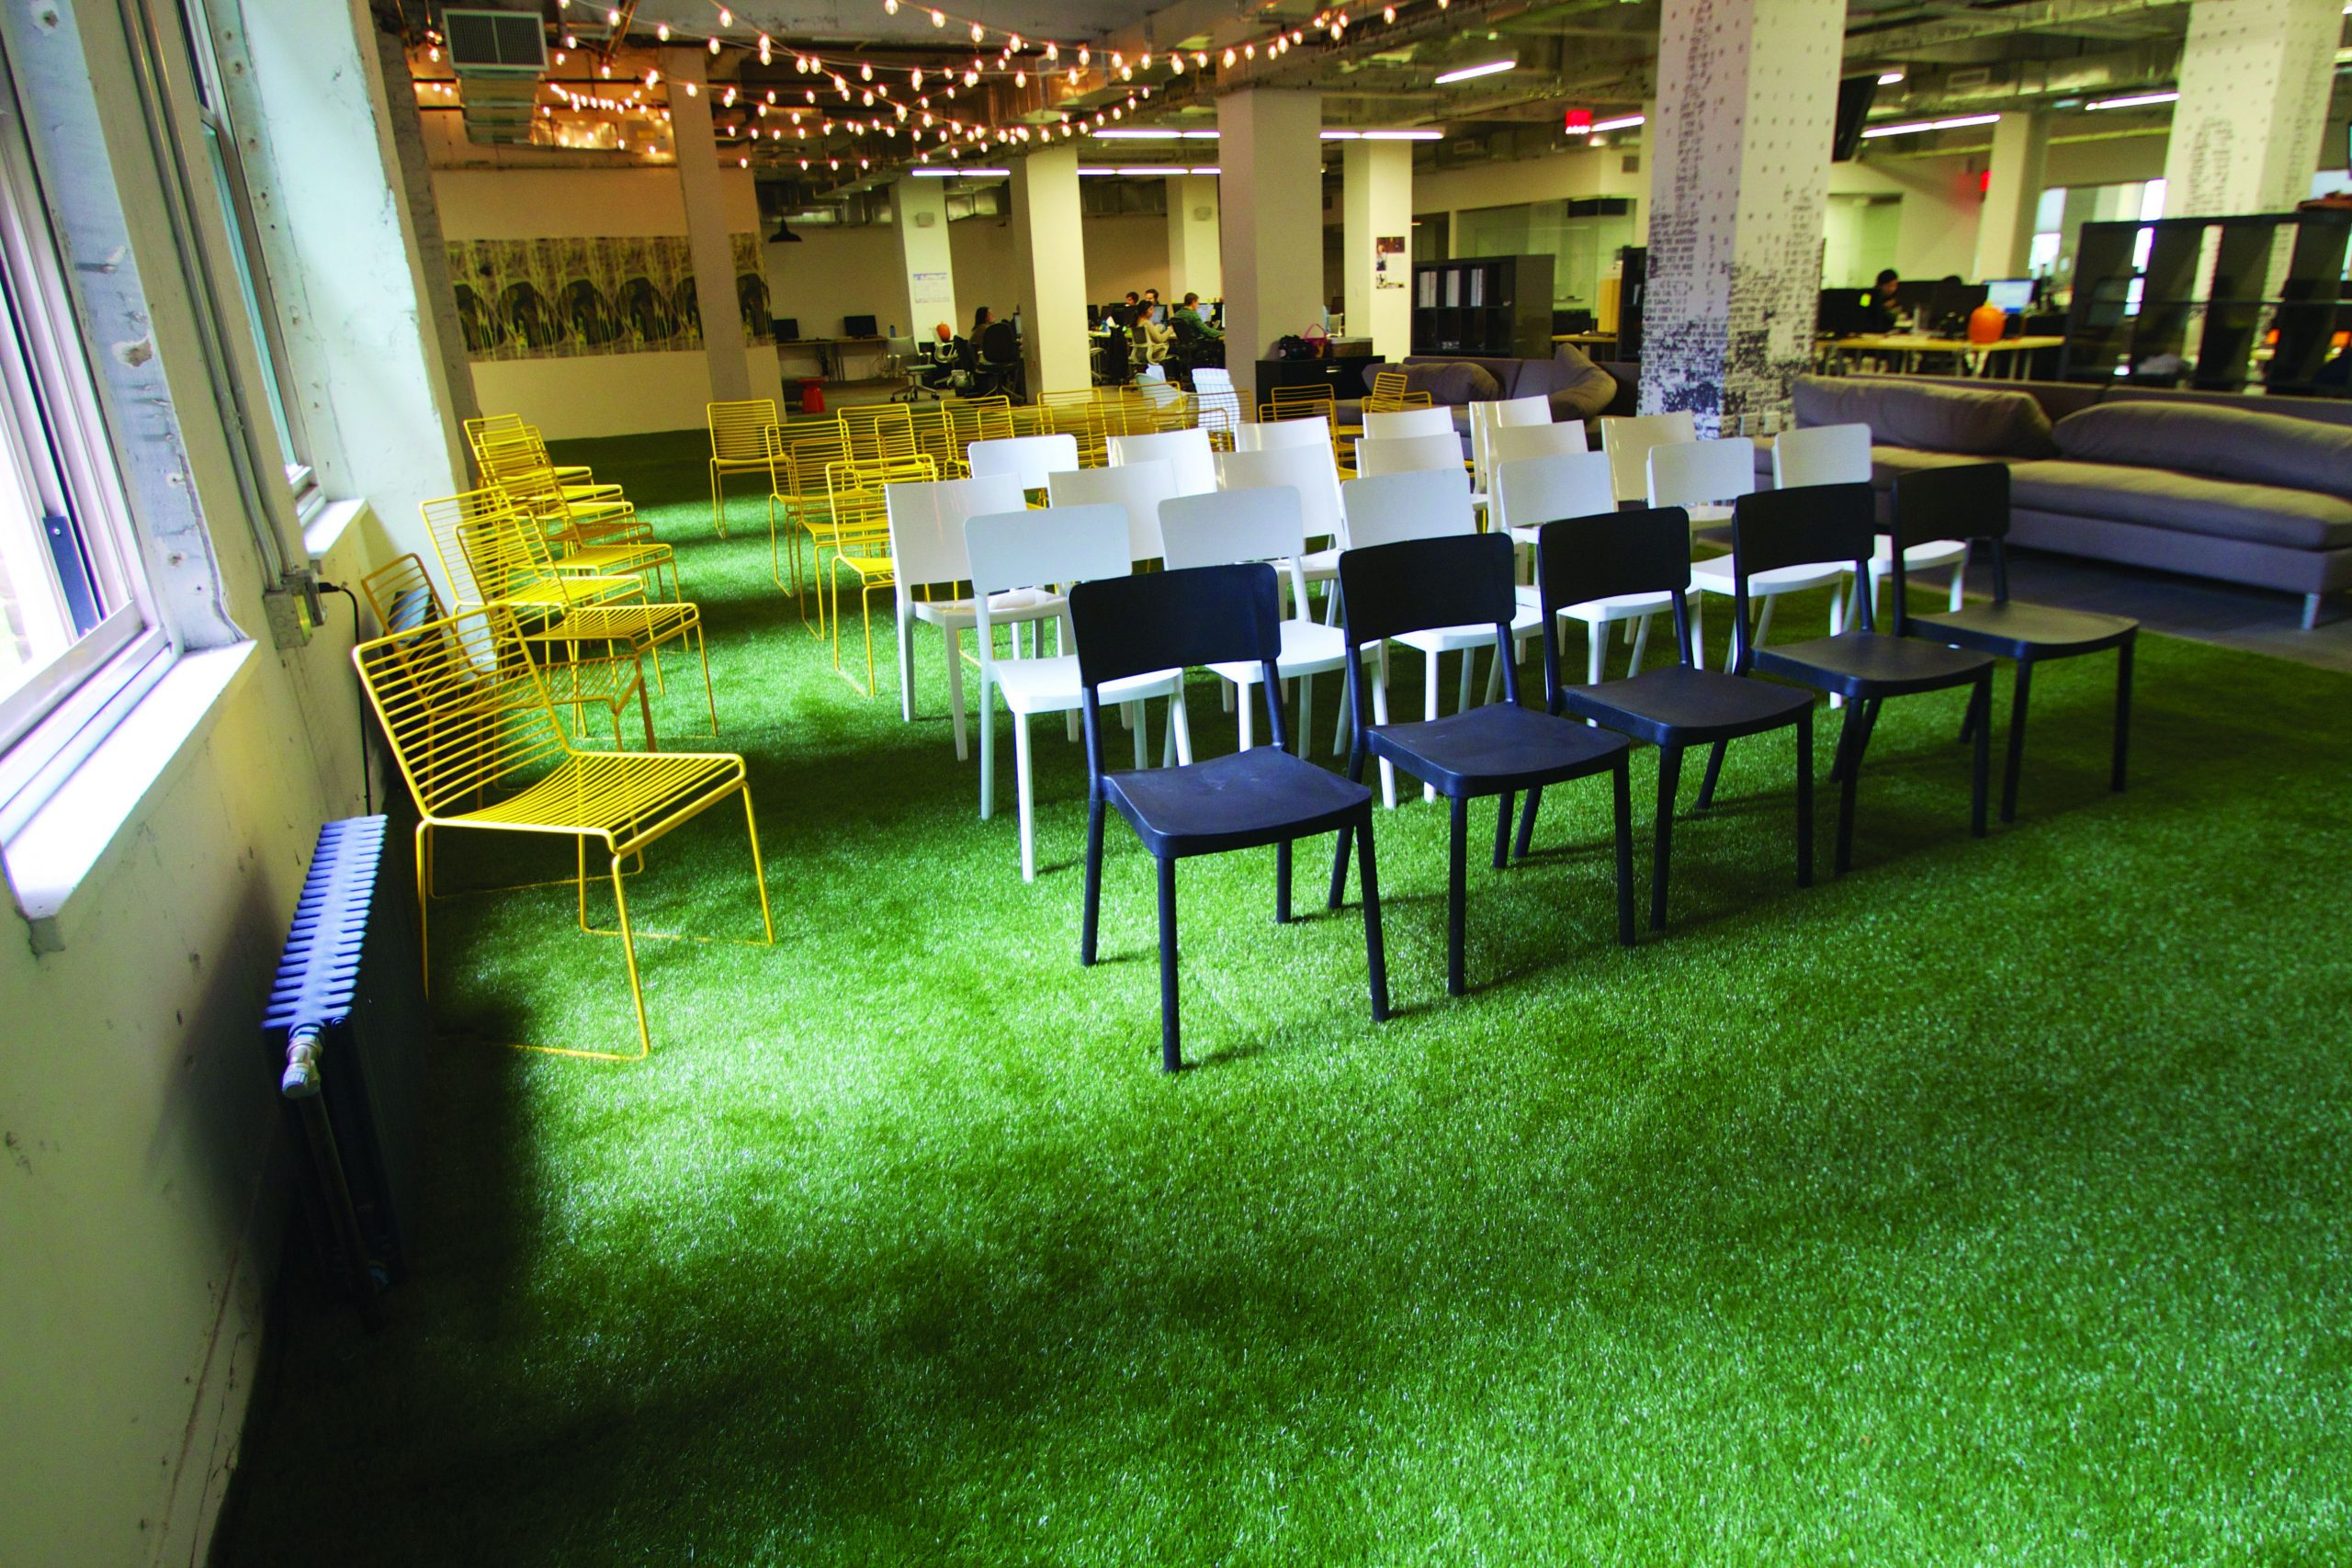 Commercial lawn, artificial grass for indoor use